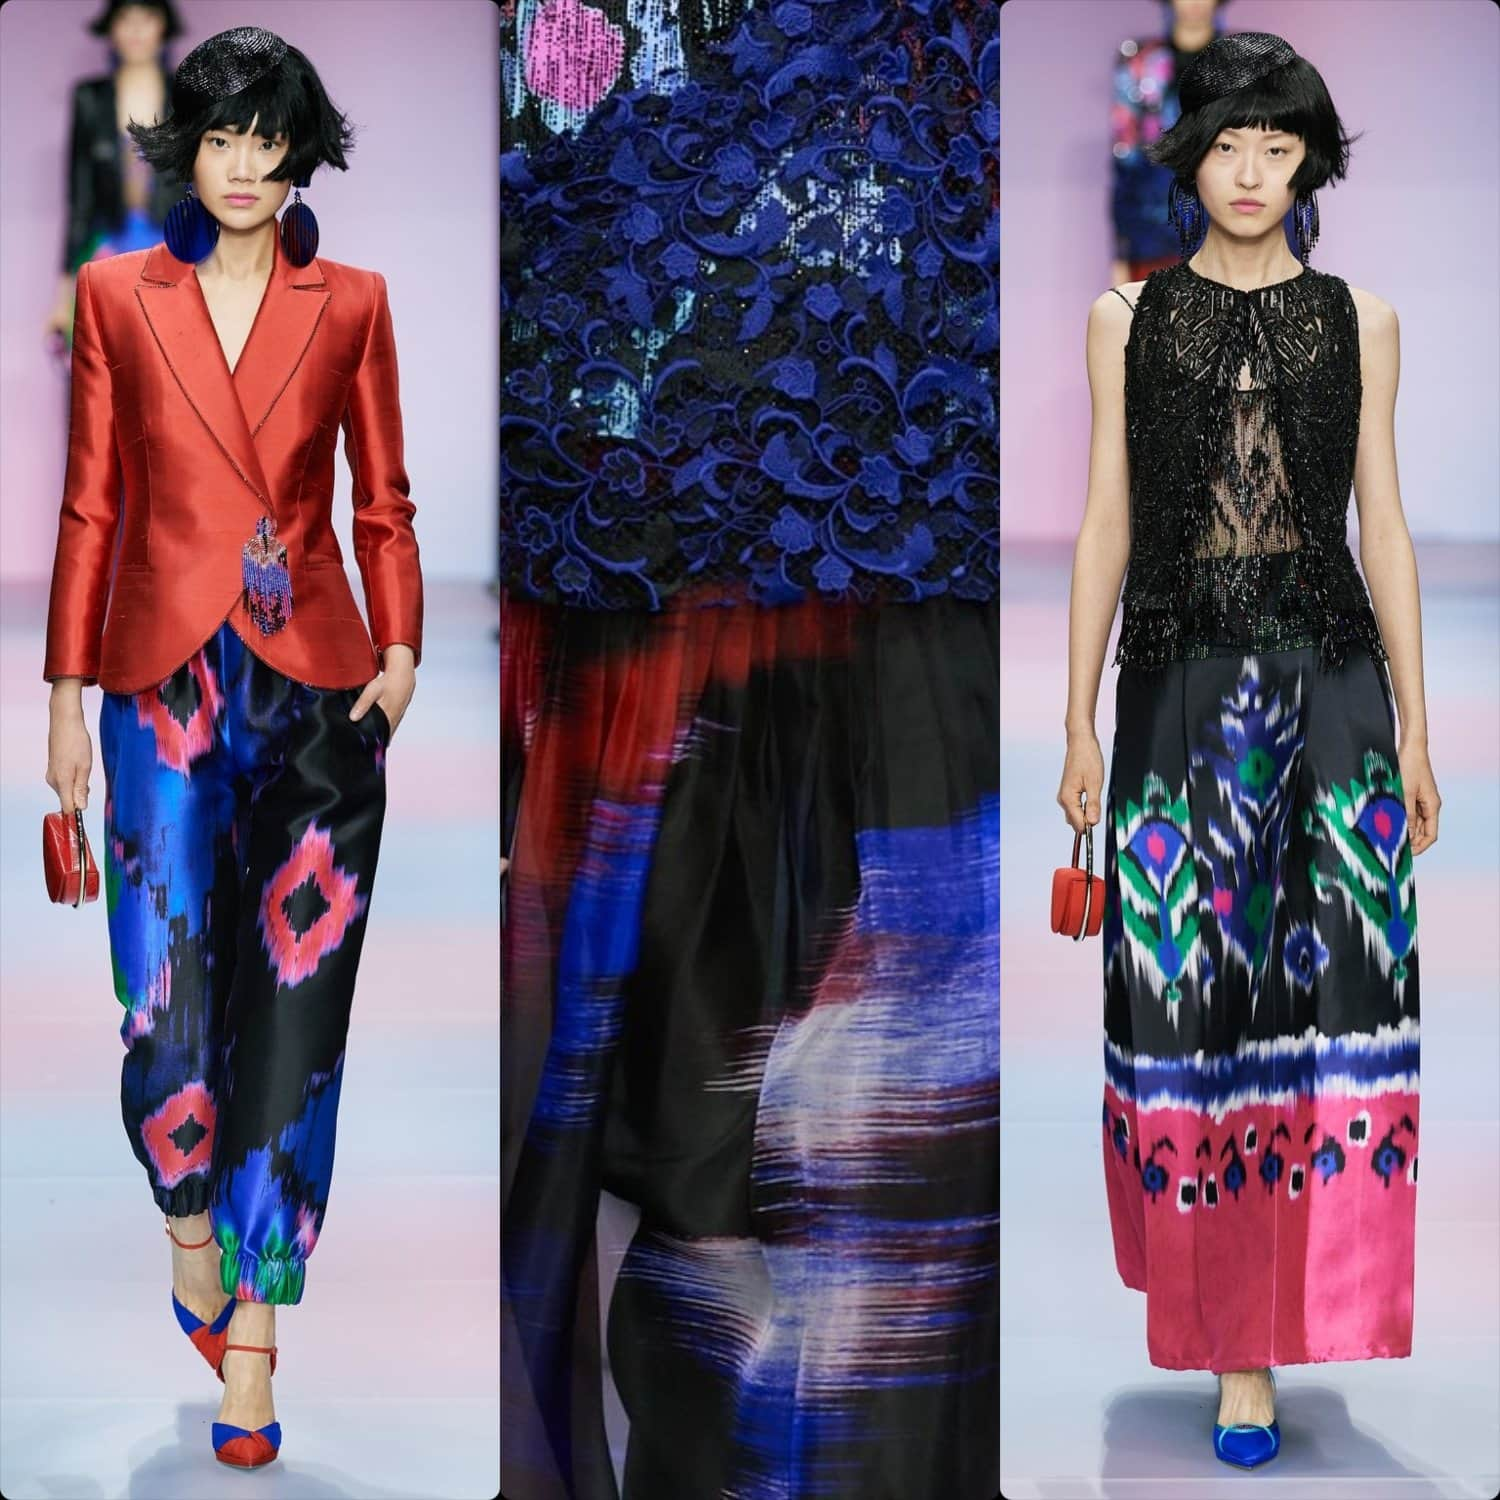 Armani Privé Haute Couture Spring Summer 2020 Paris. RUNWAY MAGAZINE ® Collections. RUNWAY NOW / RUNWAY NEW